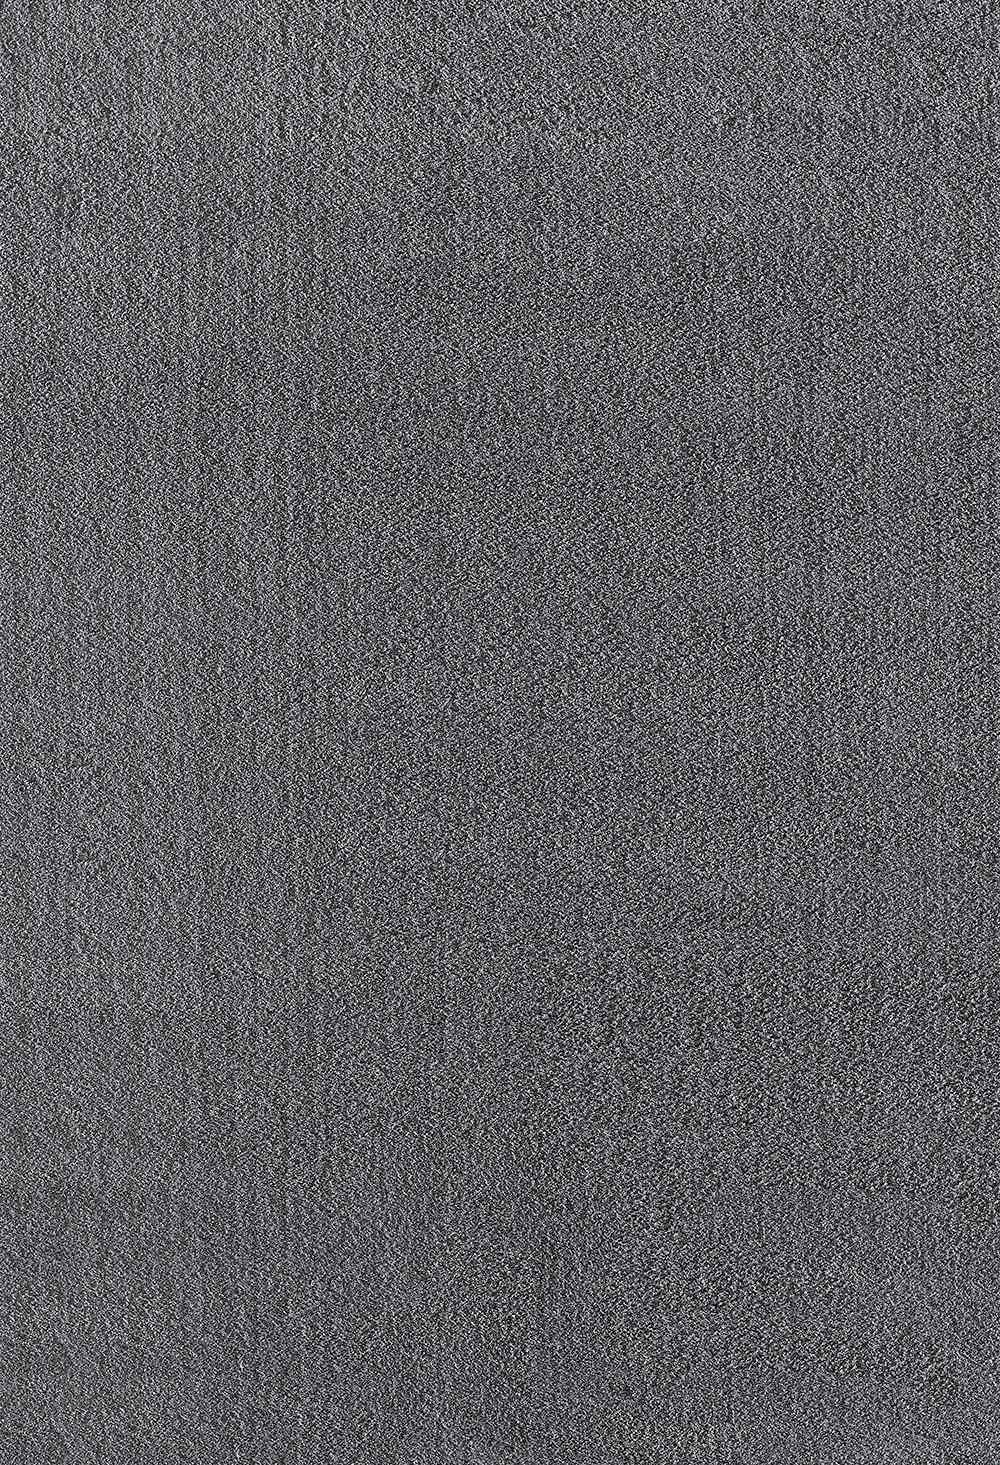 Dynamic Rugs Silky Shag Grey 5900 Area Rug